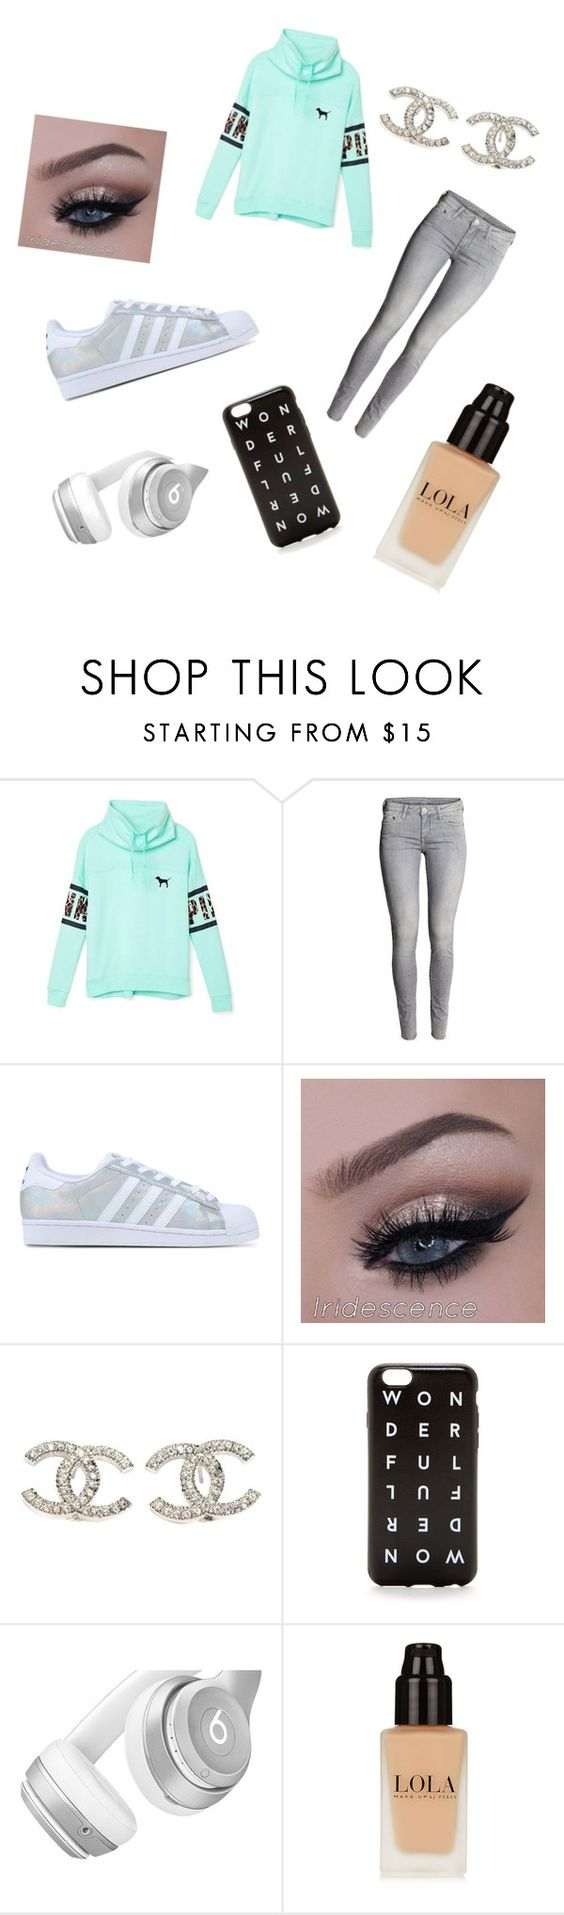 """Grey "" by tiiitegirly ❤ liked on Polyvore featuring Victoria's Secret, adidas Originals, Chanel, Beats by Dr. Dre, women's clothing, women, female, woman, misses and juniors"